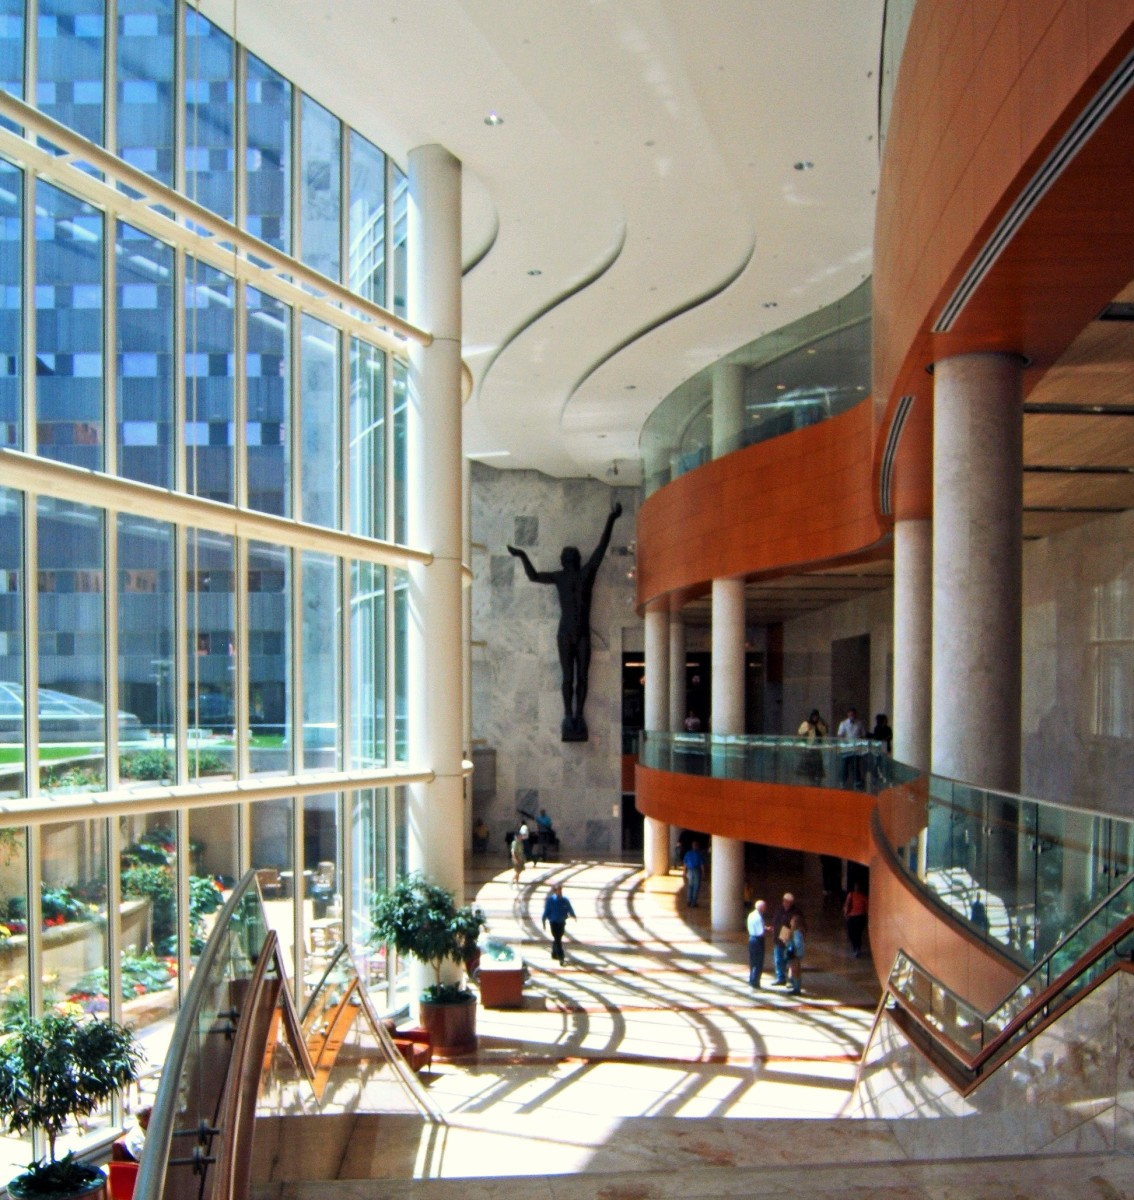 Pictured here is the Gonda Building atrium. The downtown Rochester campus has over 30 buildings, most of which are connected by underground tunnels.  photo by Chad Johnson